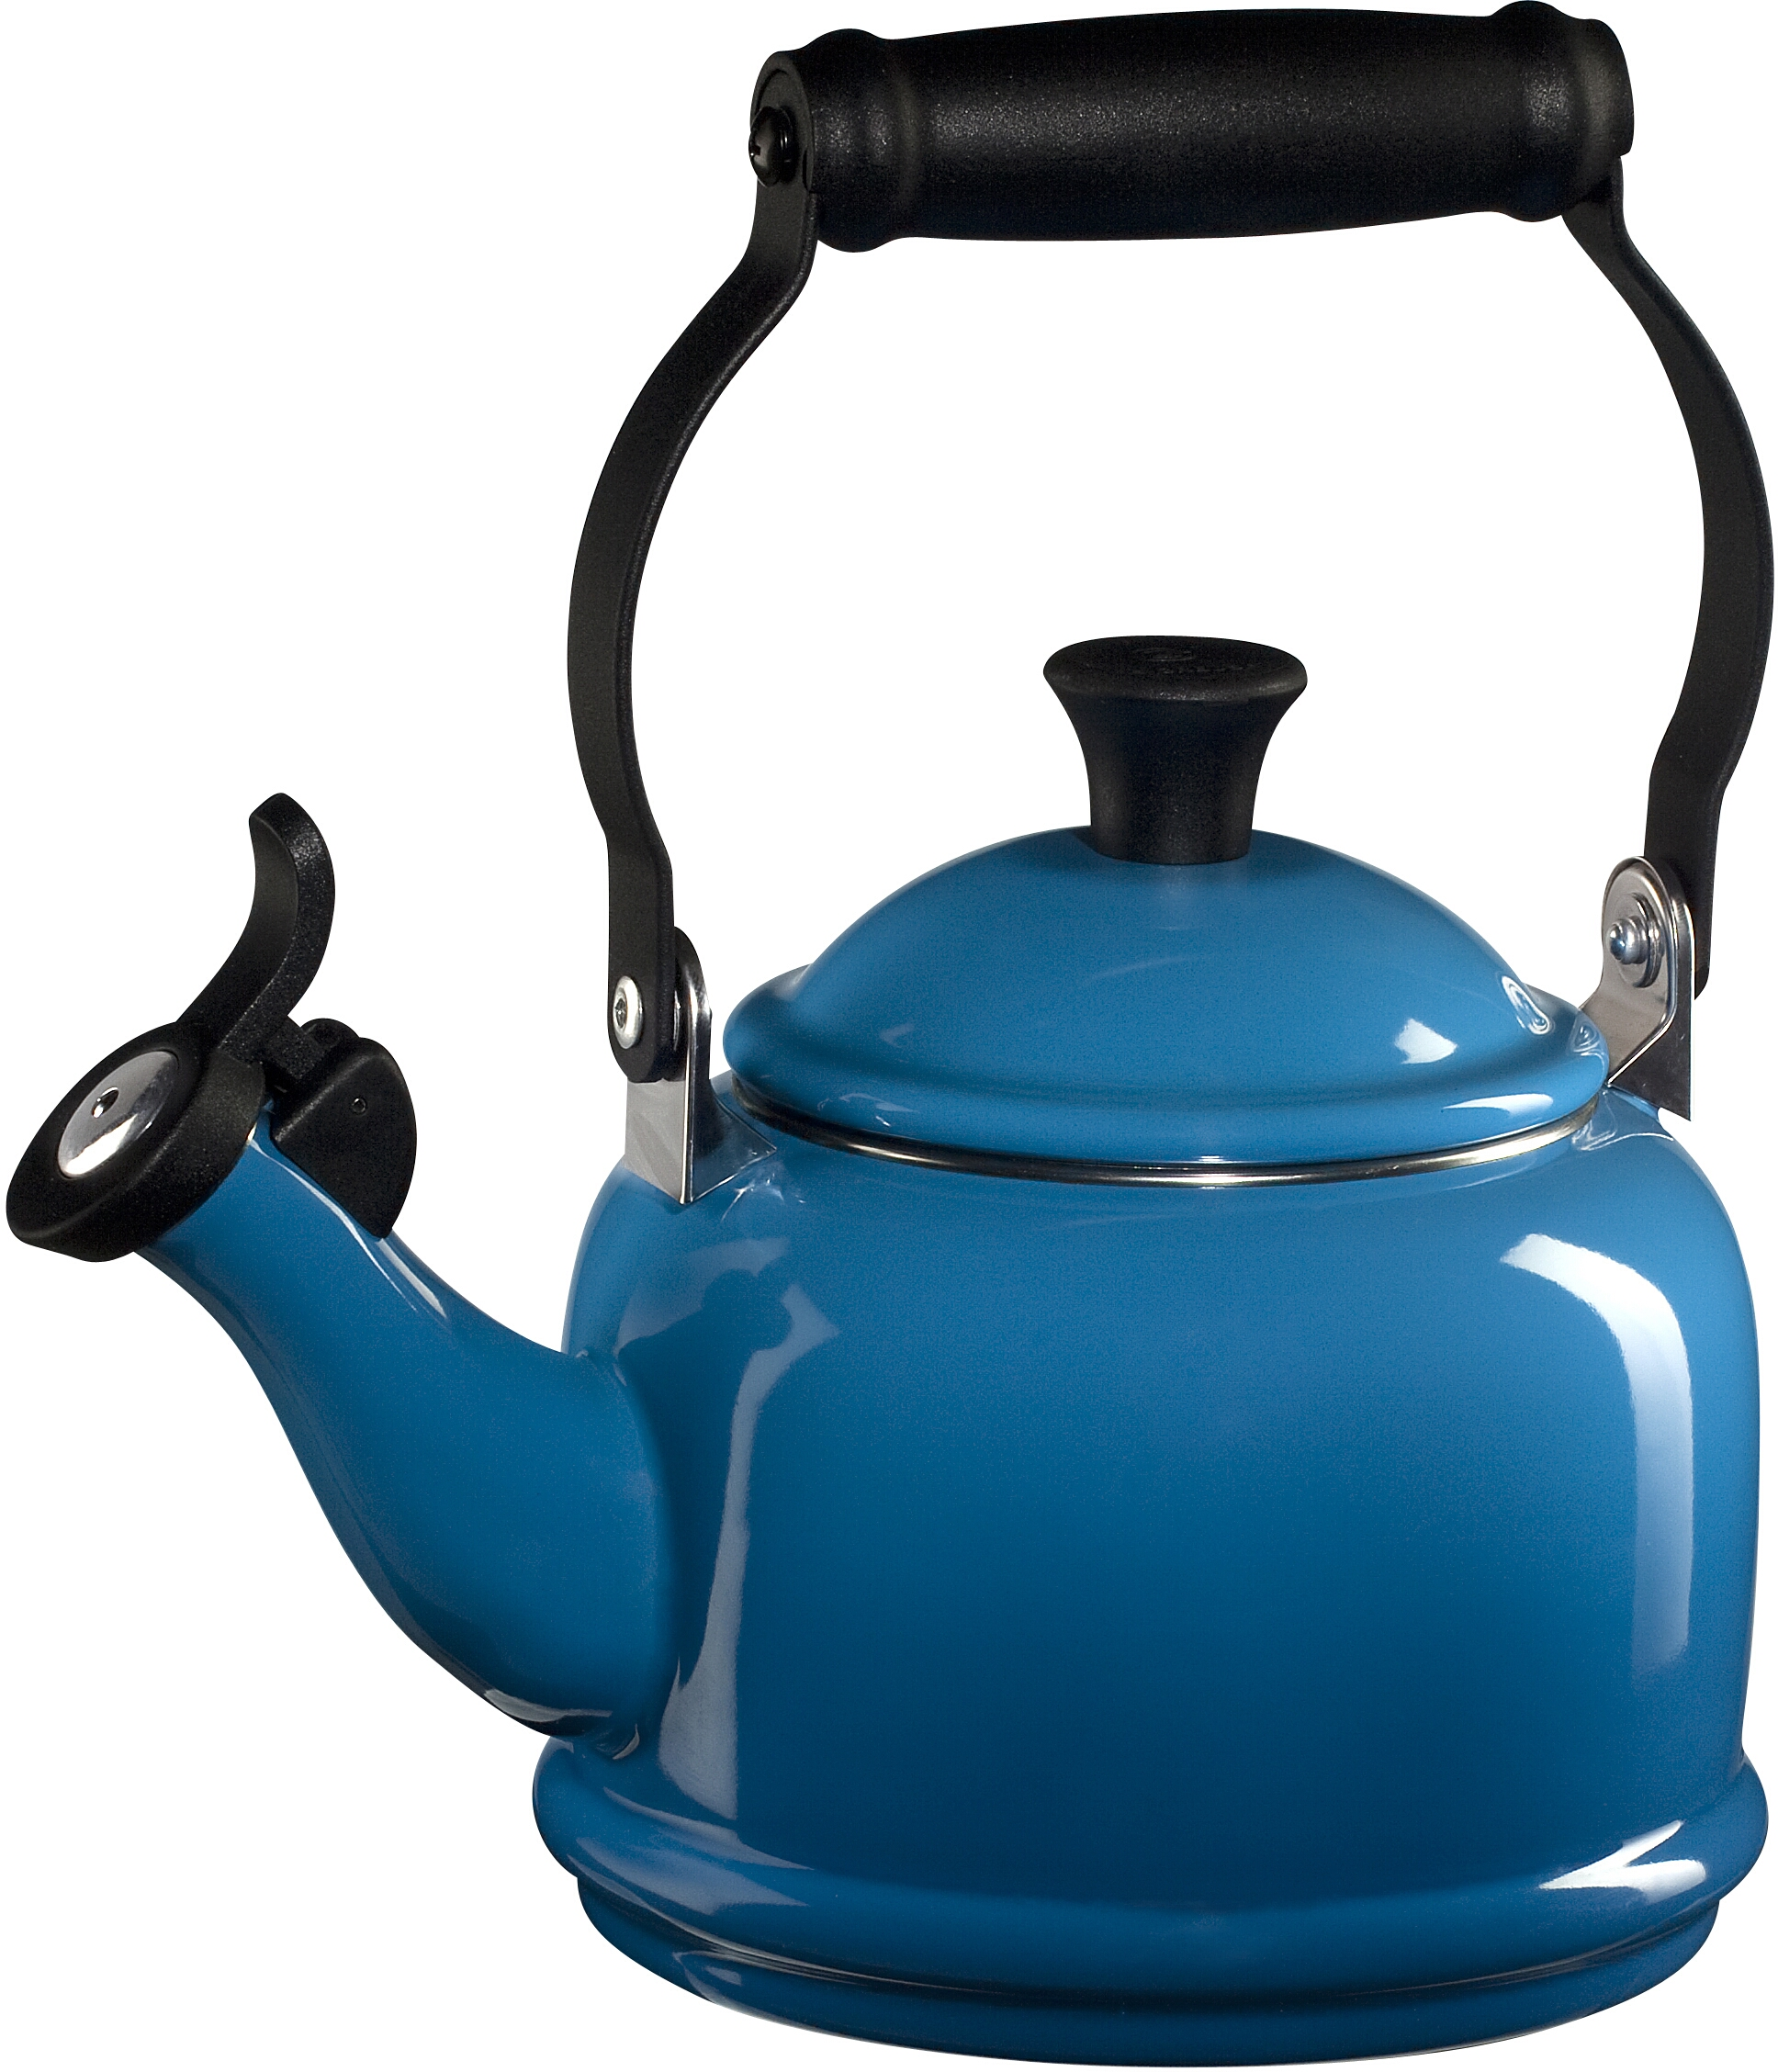 Le Creuset Marseille Blue Enamel On Steel Demi Tea Kettle, 1.25 Quart